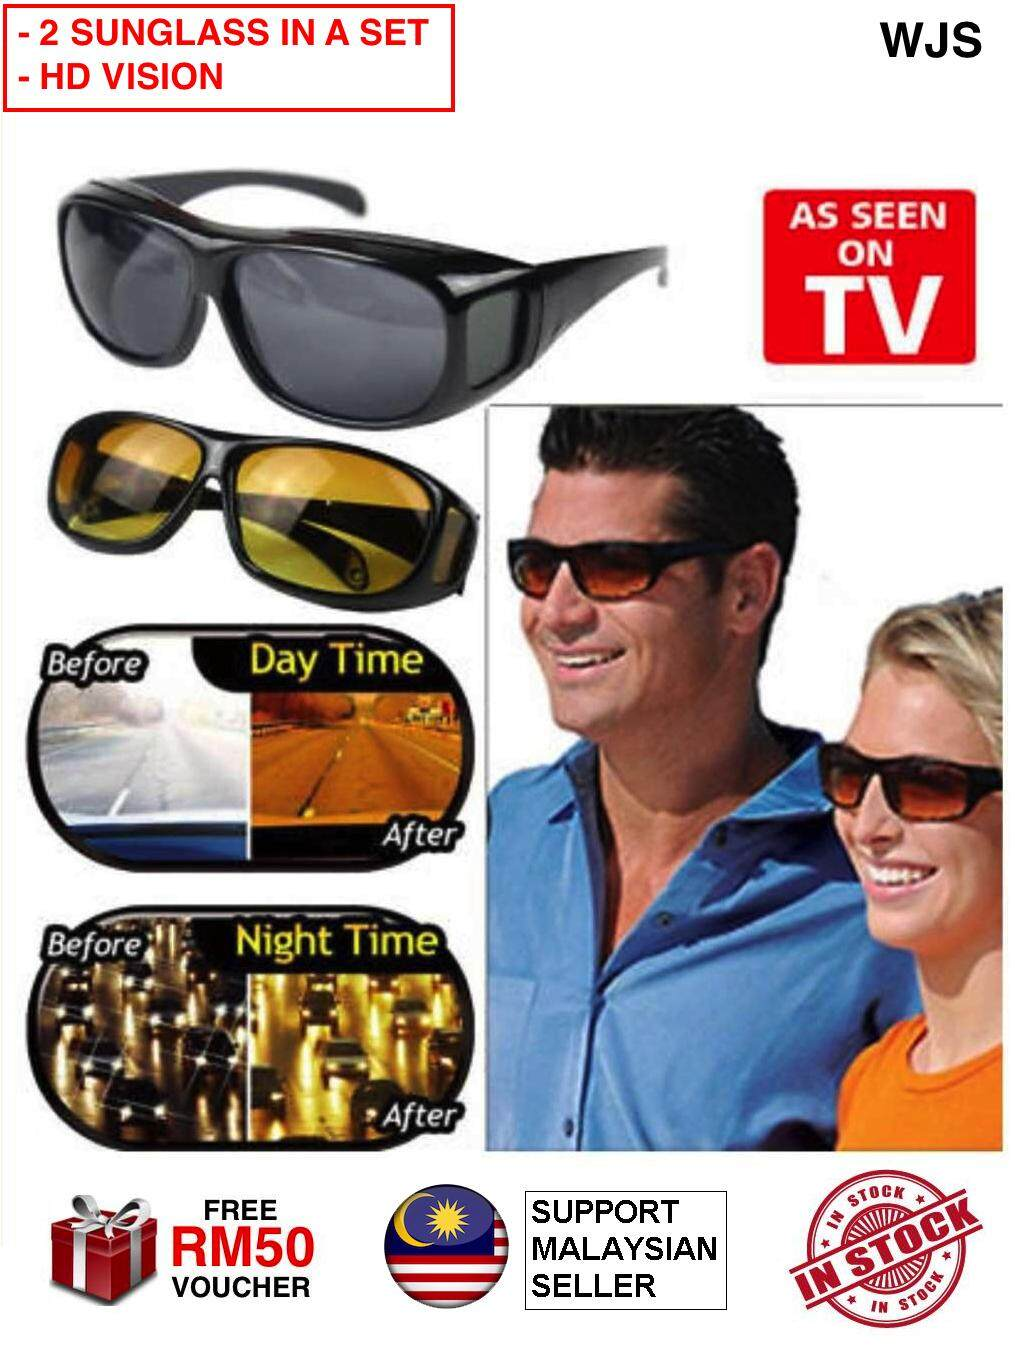 (2 IN A SET) WJS HD Vision Sunglass HD Vision Sunglasses HD Sunglass Senior Sunglass Grandparent Sunglass Driving Sunglass Anti Glare Anti Reflection Wrap Around Sunglasses Spectacle Spectacles BLACK BROWN [FREE RM50 VOUCHER]